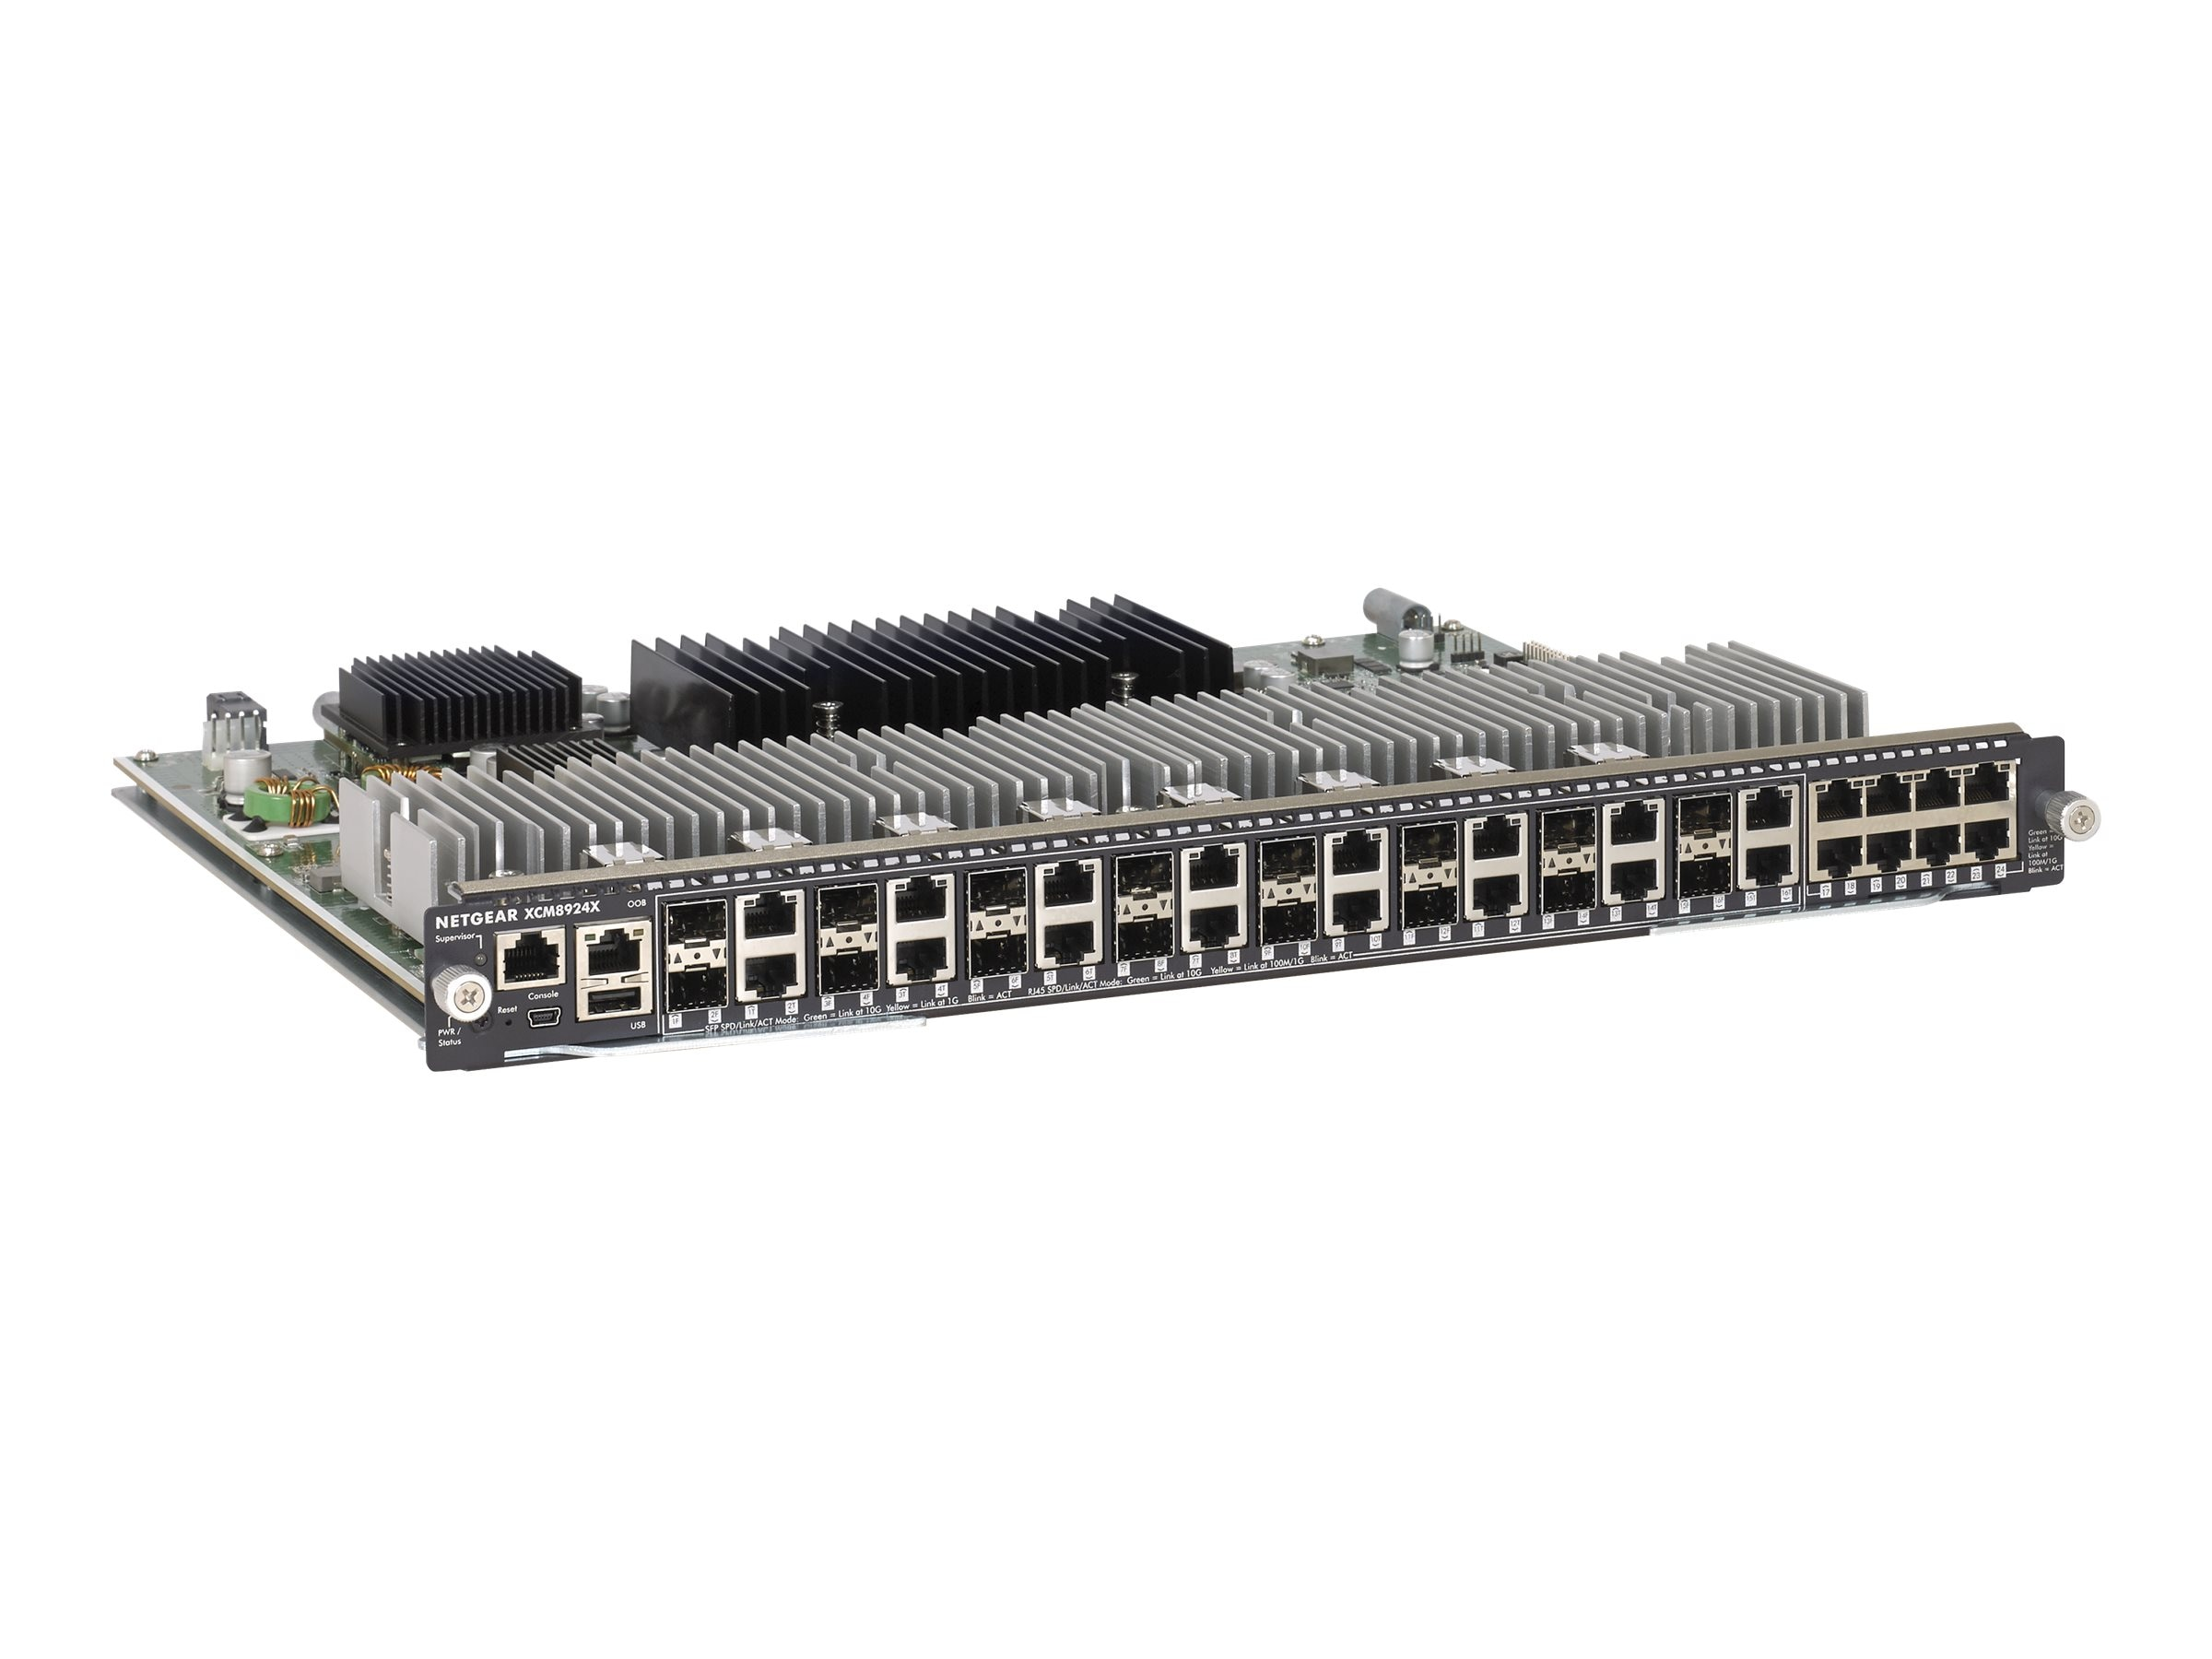 Netgear M6100 Chassis Series 24x10GBASE-T and 16 Shared SFP+ Blade